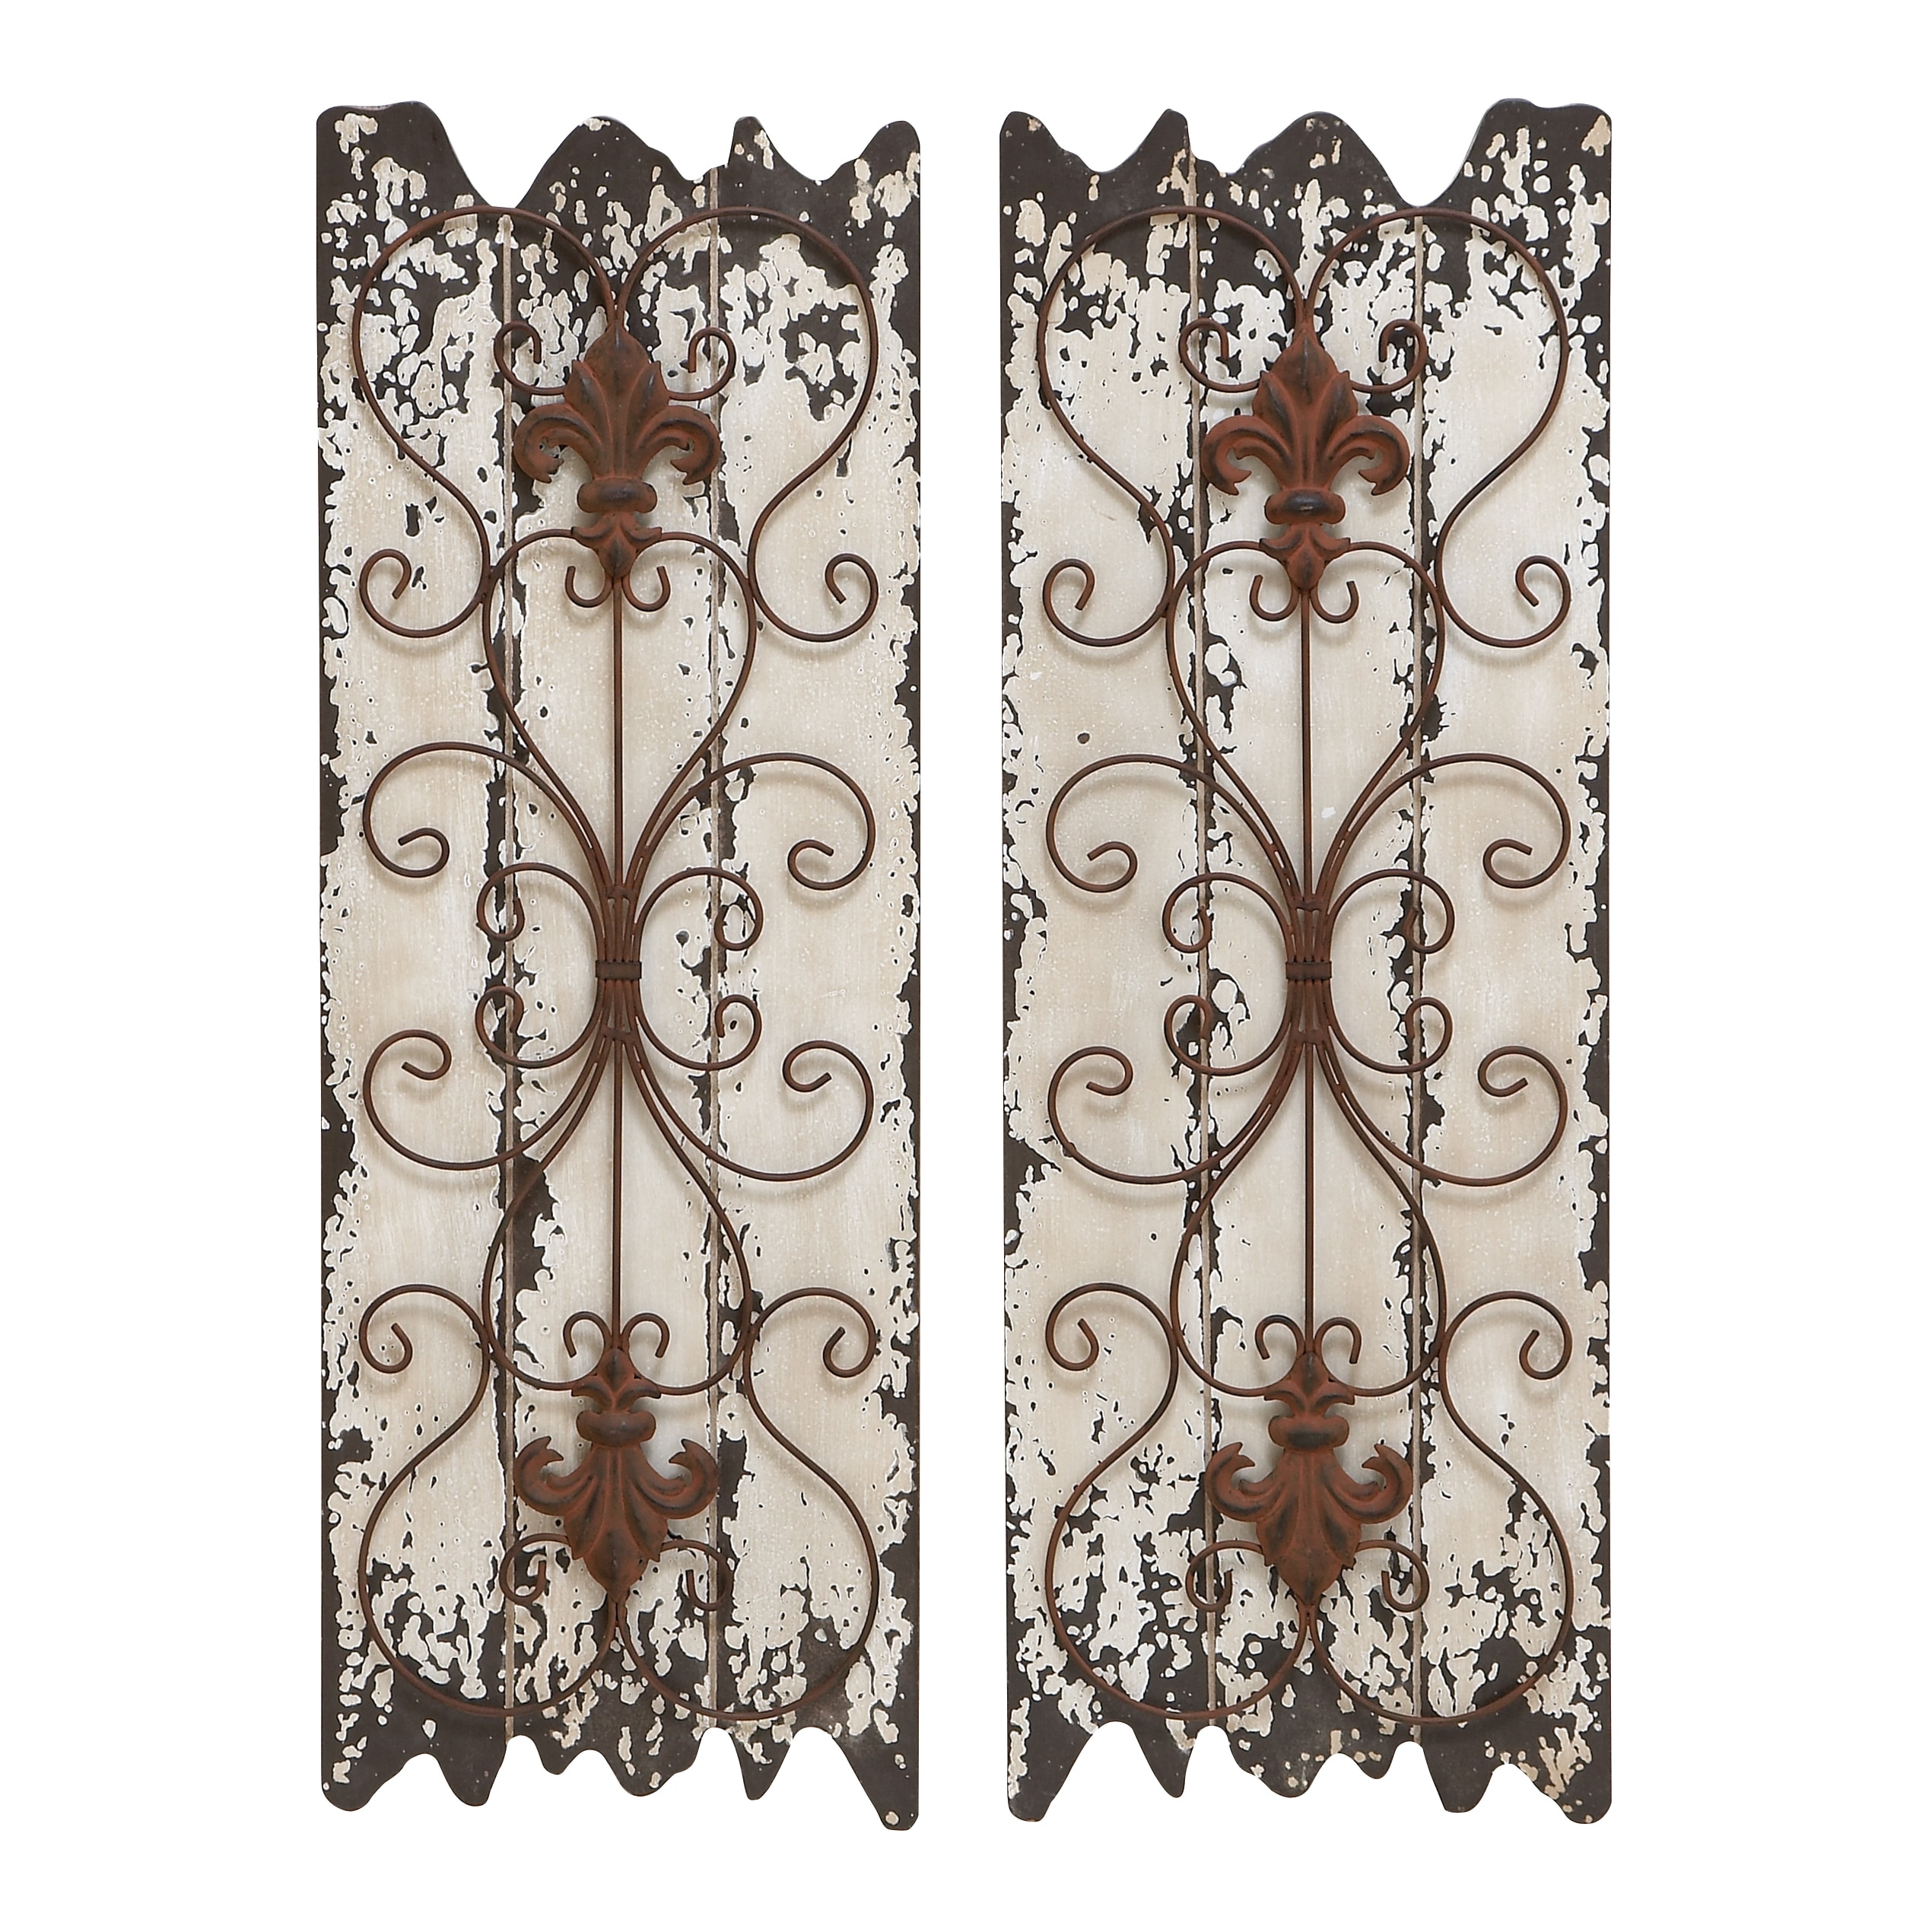 Antique Wood Metal Wall Panel Set Rustic Country Decor ... on Wood And Metal Wall Sconces id=28577